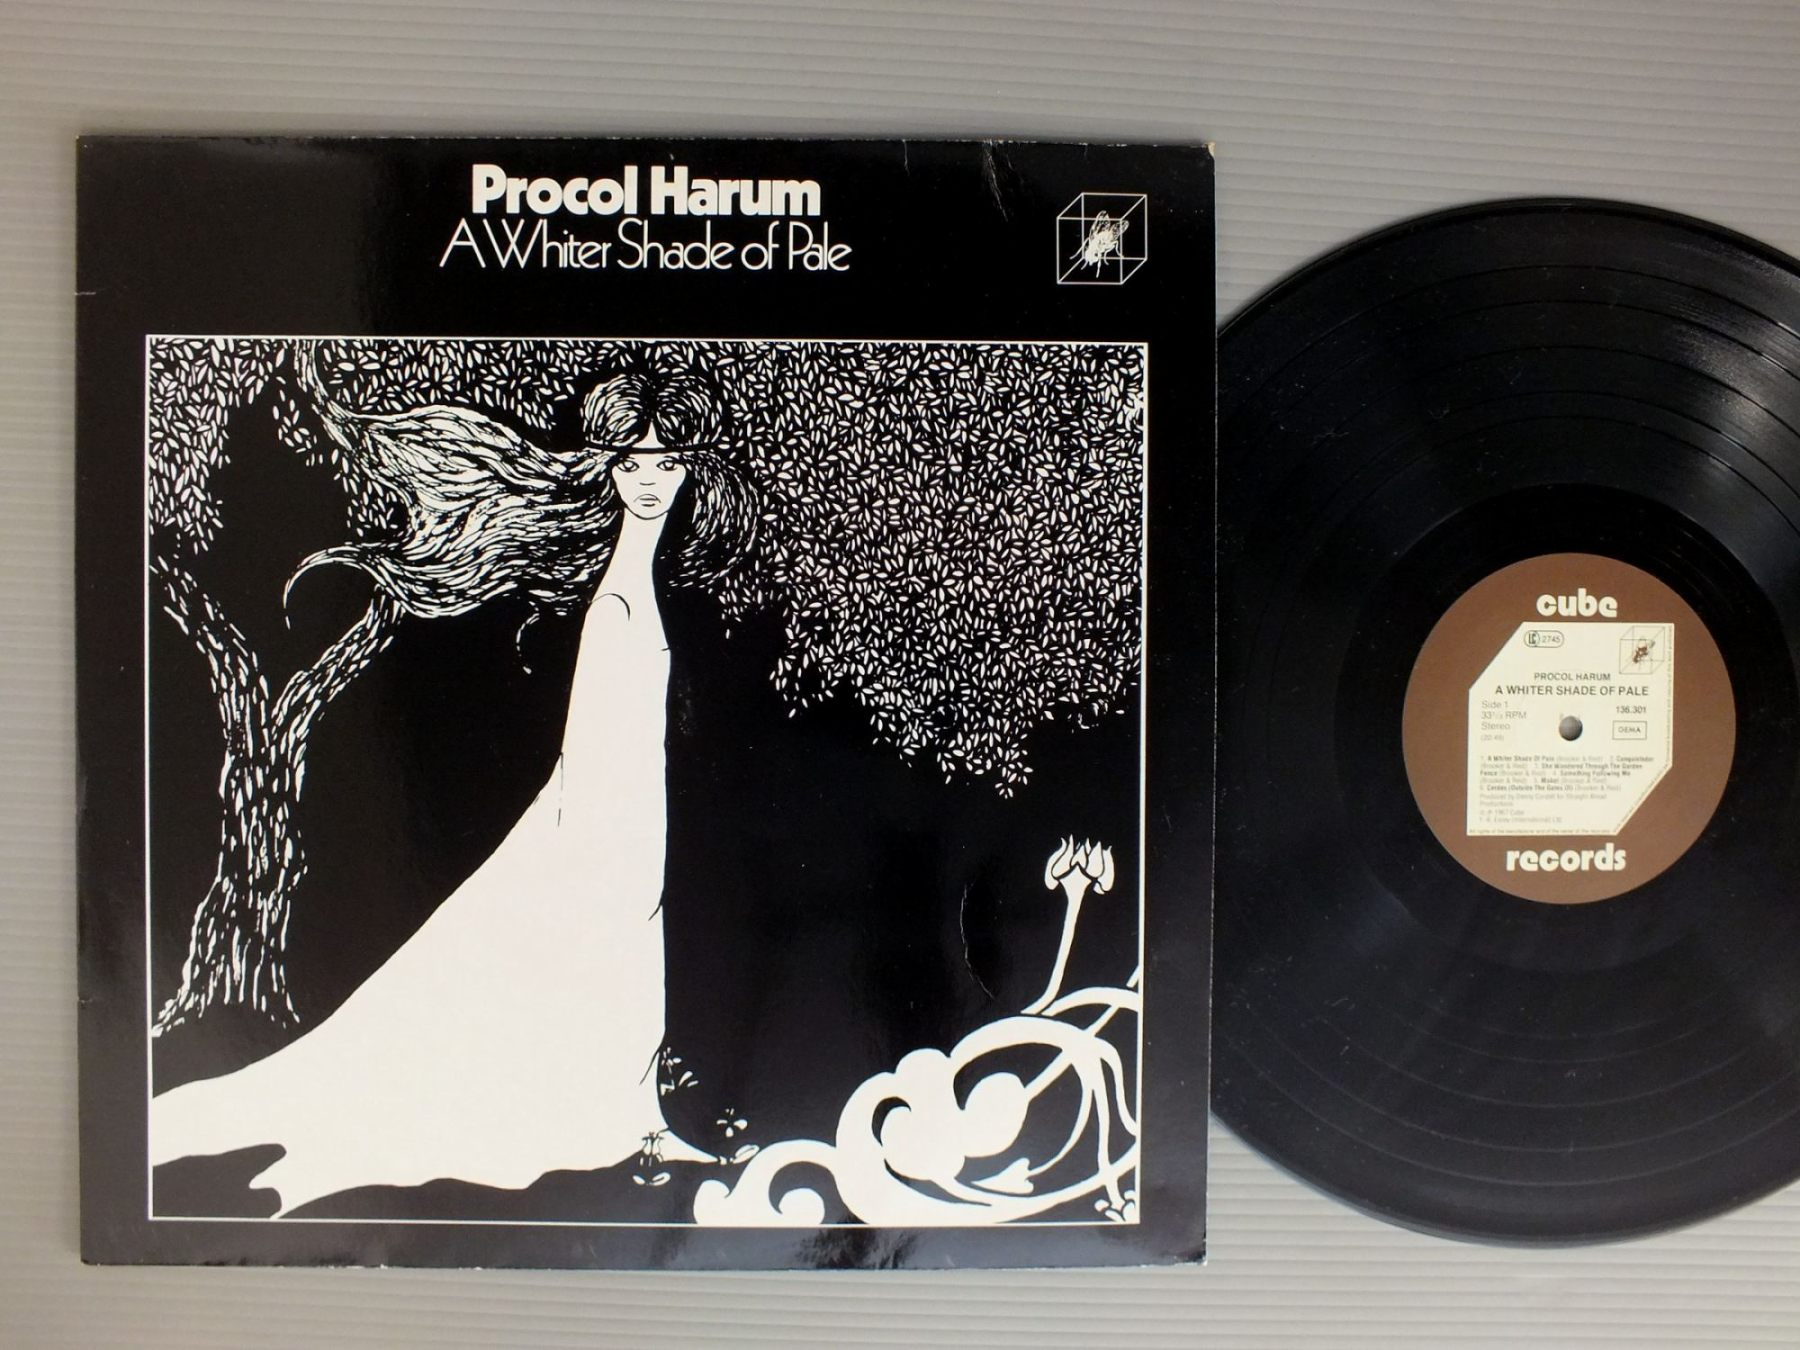 PROCOL HARUM - WHITER SHADE OF PALE - 33T